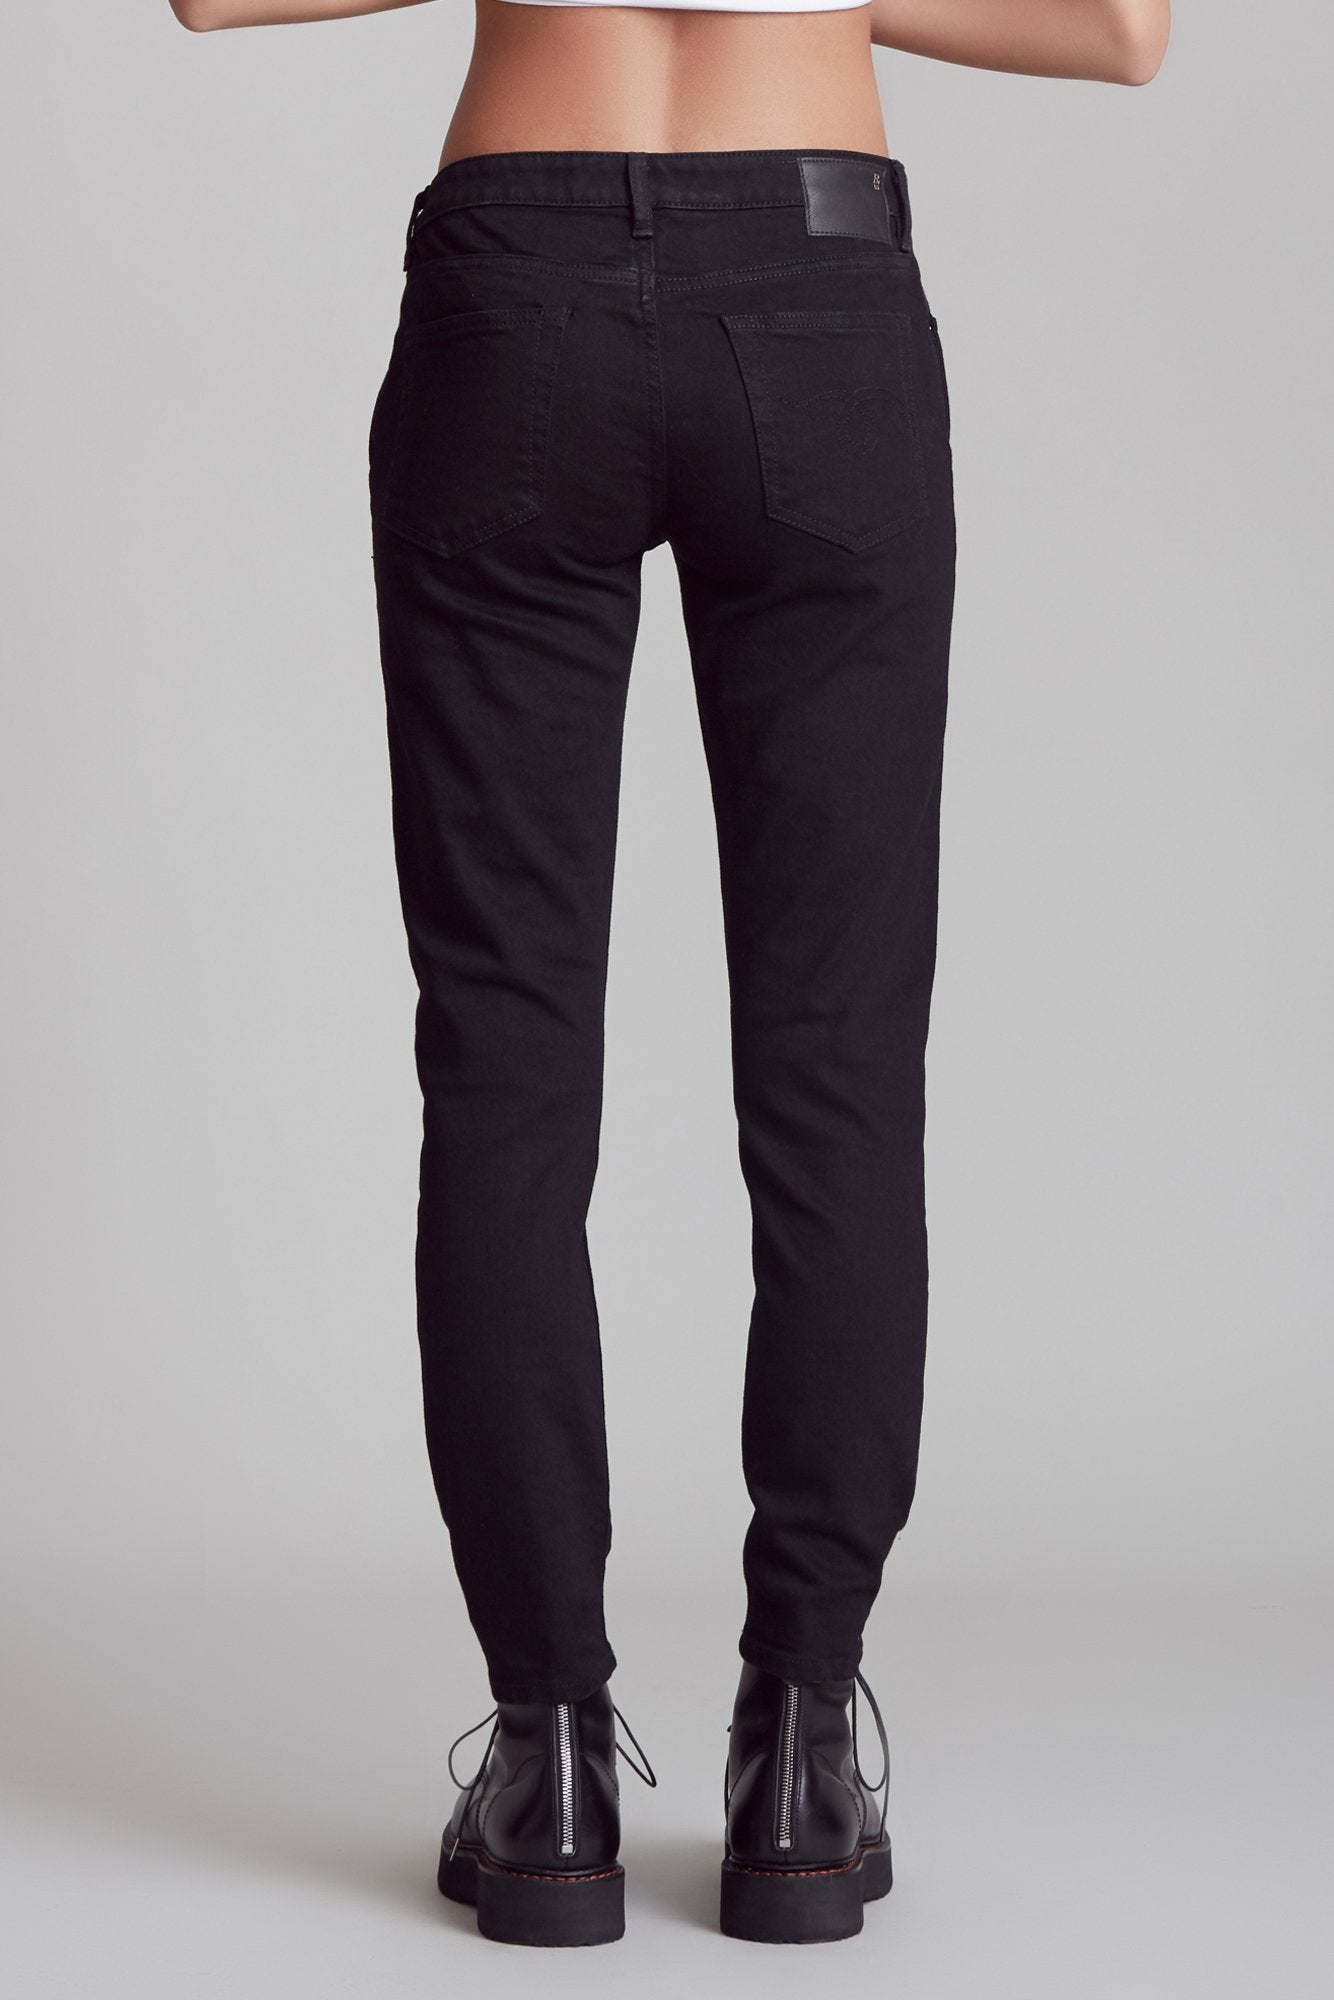 Double Pocket Boy Skinny - Rinsed Black